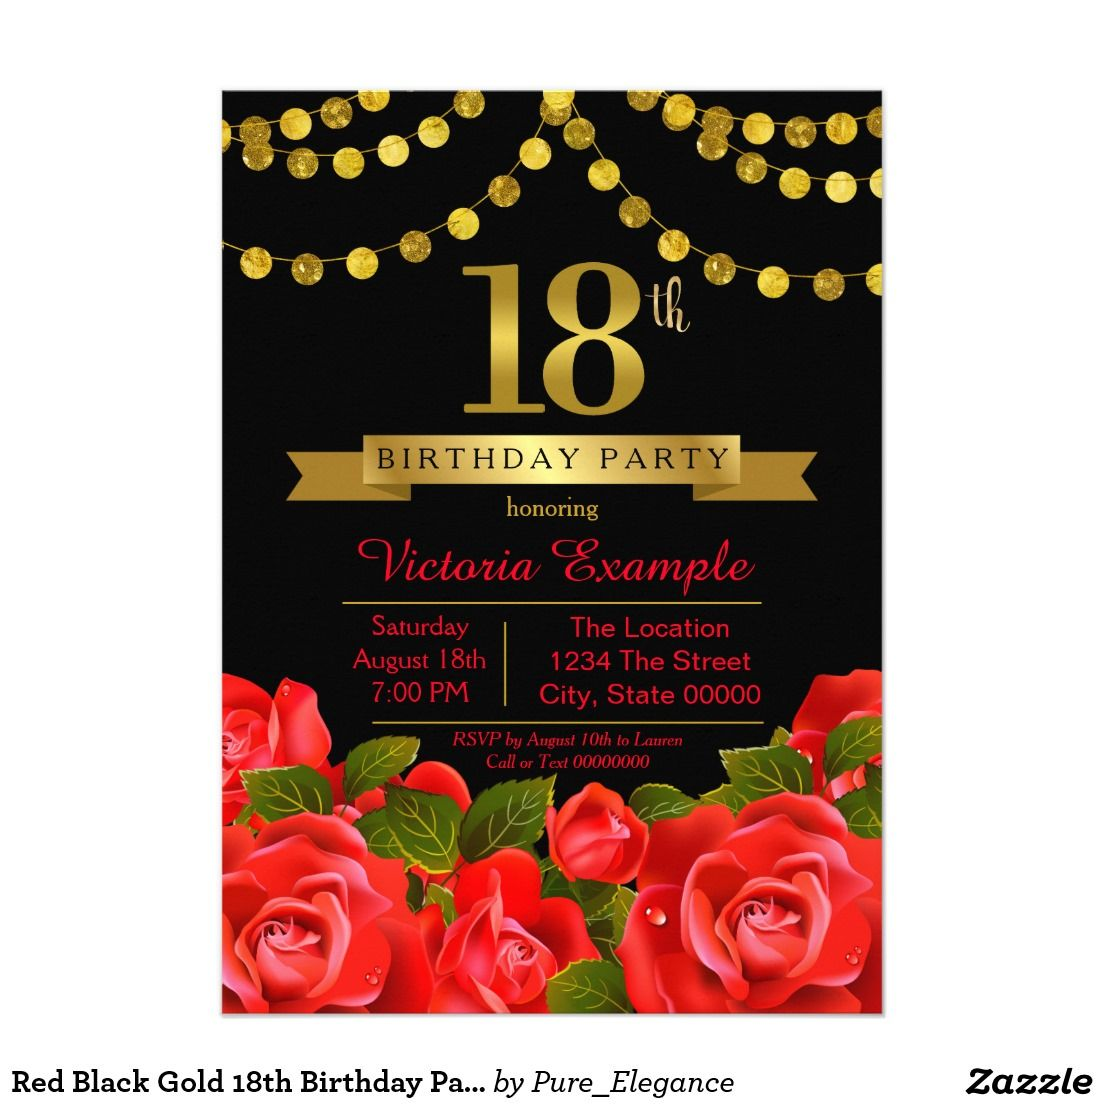 Red Black Gold 18th Birthday Party Card | 18th birthday party ...